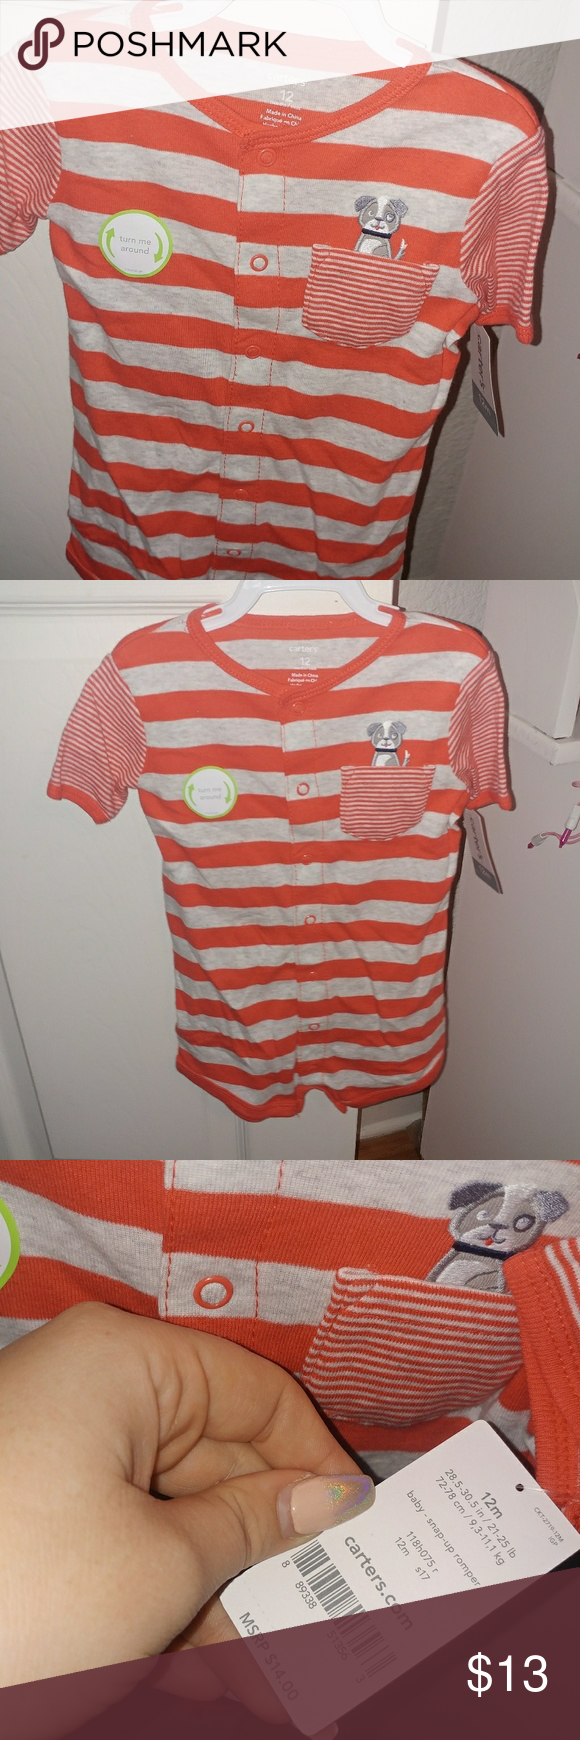 Carters Doggy Red Stripe One Piece Jumper Boutique 5 In 1 12m 21 25 Lbs Nwt